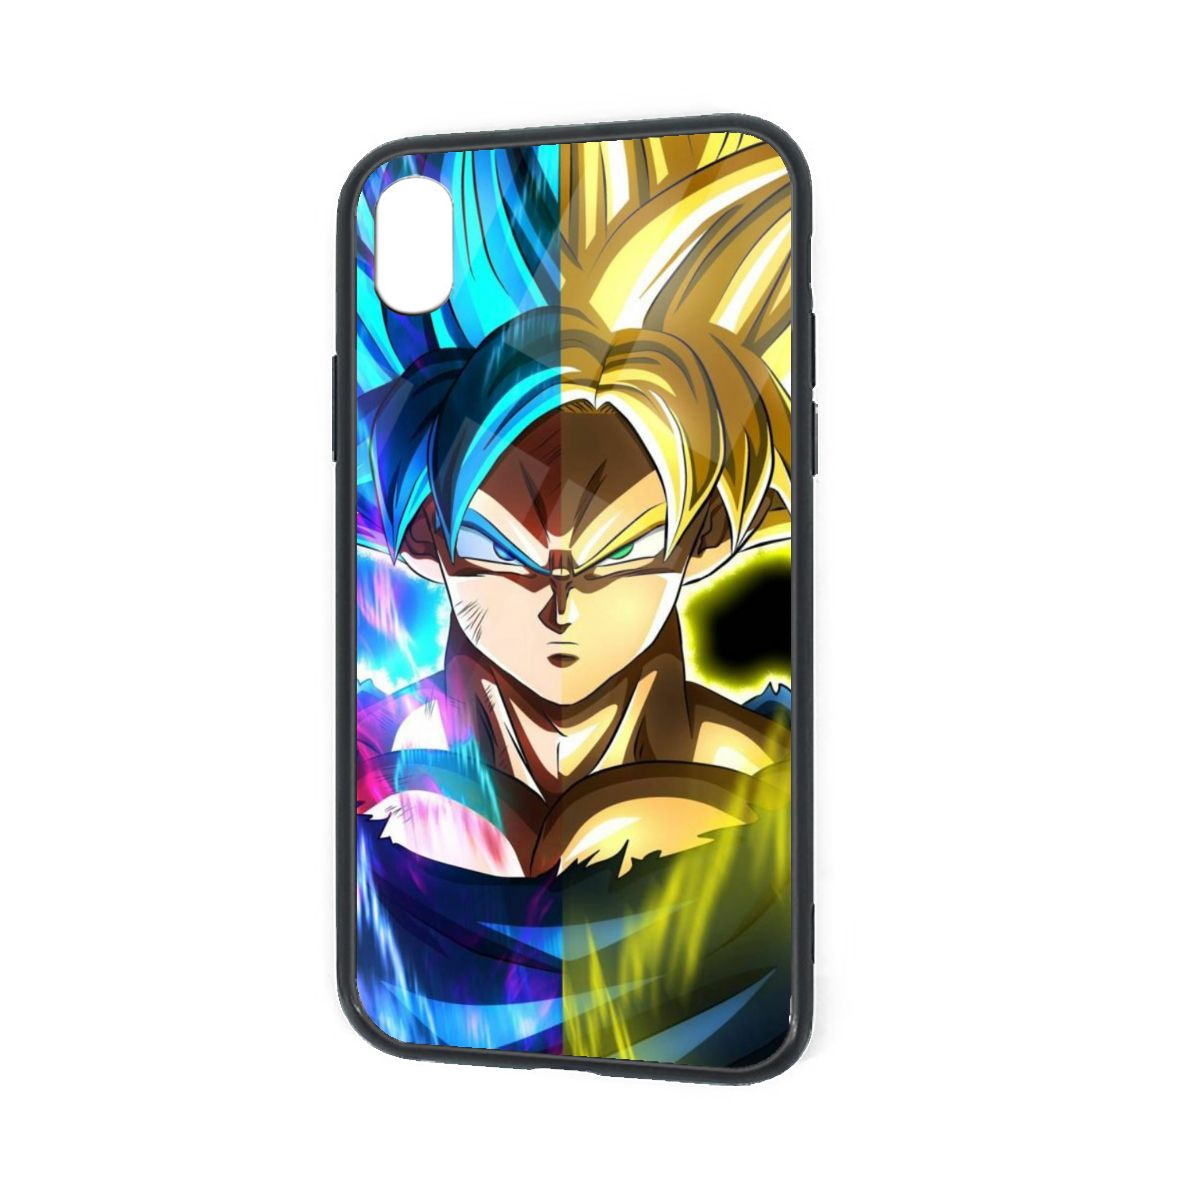 IPhone X XR XS 6 7 8 Plus Hybrid Soft Grip Clear Back Panel Ultra-Thin [Slim Fit] Cover Goku SSJ 2 and Blue